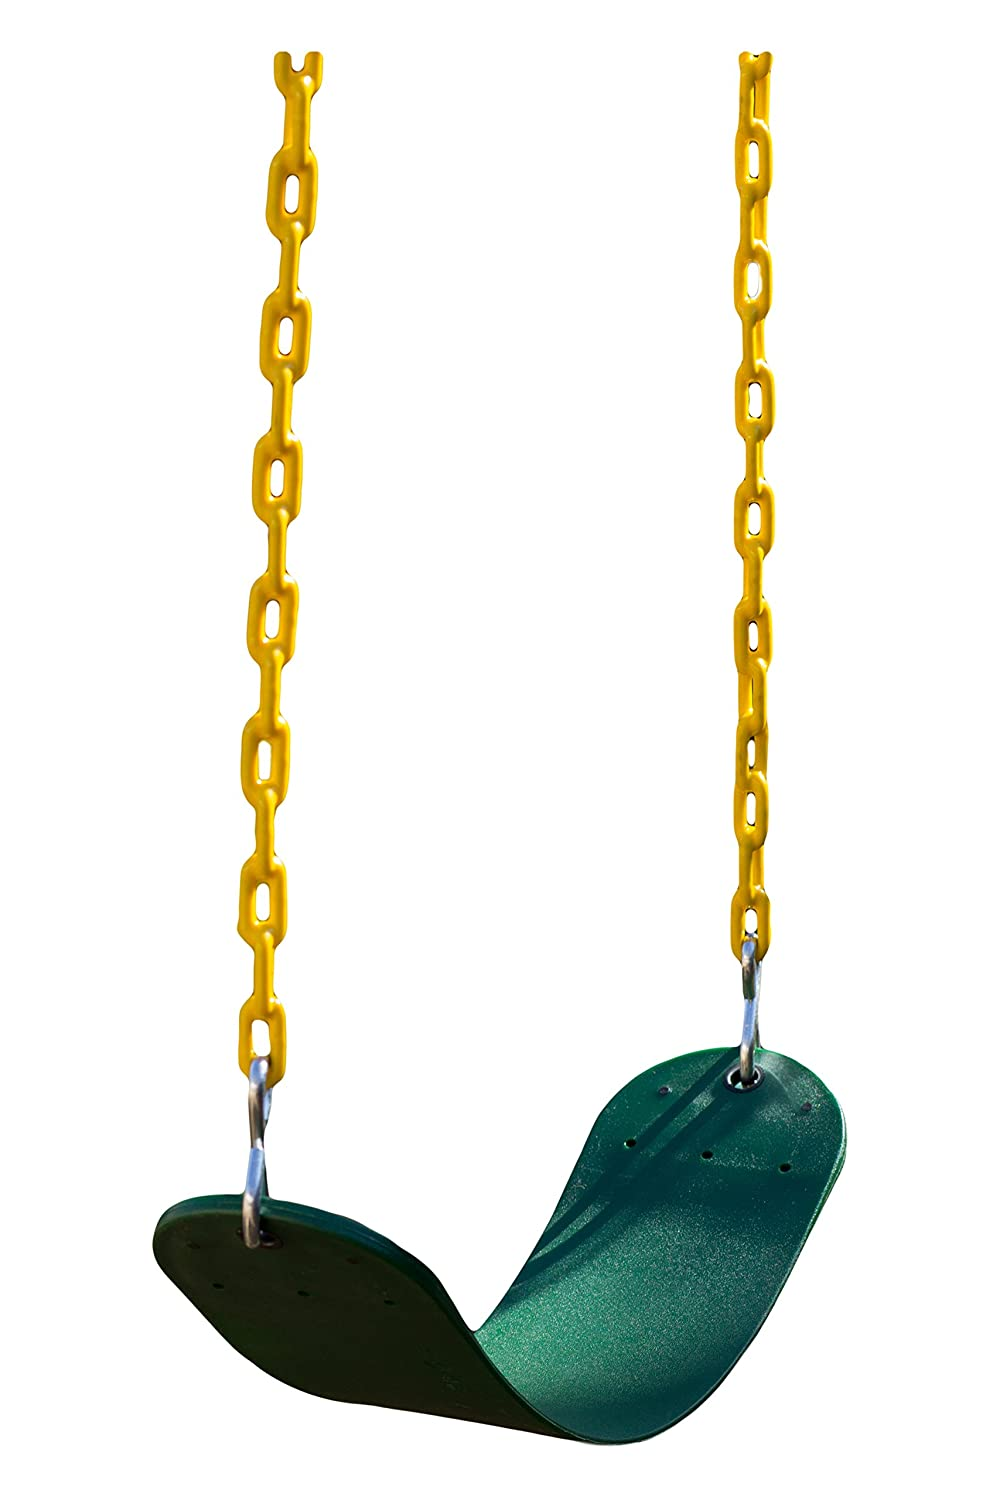 Safari Swings Tough Swing Seat Replacement with 66 Heavy Duty Coated Chain Green/Yellow